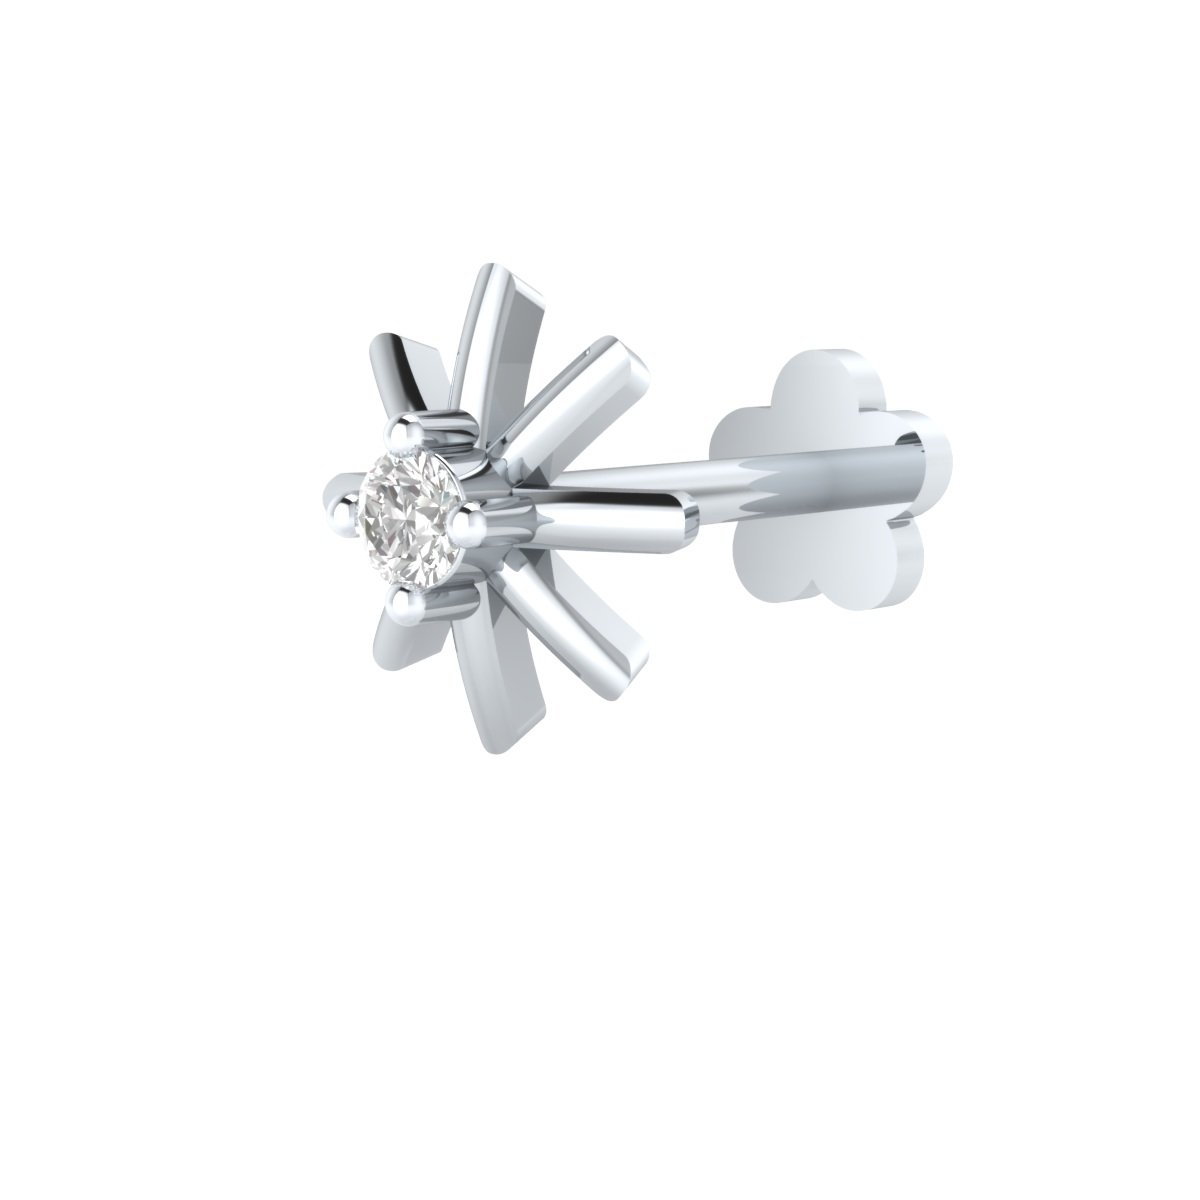 Animas Jewels DGLA Certified 14k White Gold Solitaire Stud Nose Pin for Women 0.015 Cttw Natural Diamond (G-H Color. SI Clarity) Round Cut 4-Prong-Setting. Available in 6 mm & 8 mm Length (8) by Animas Jewels